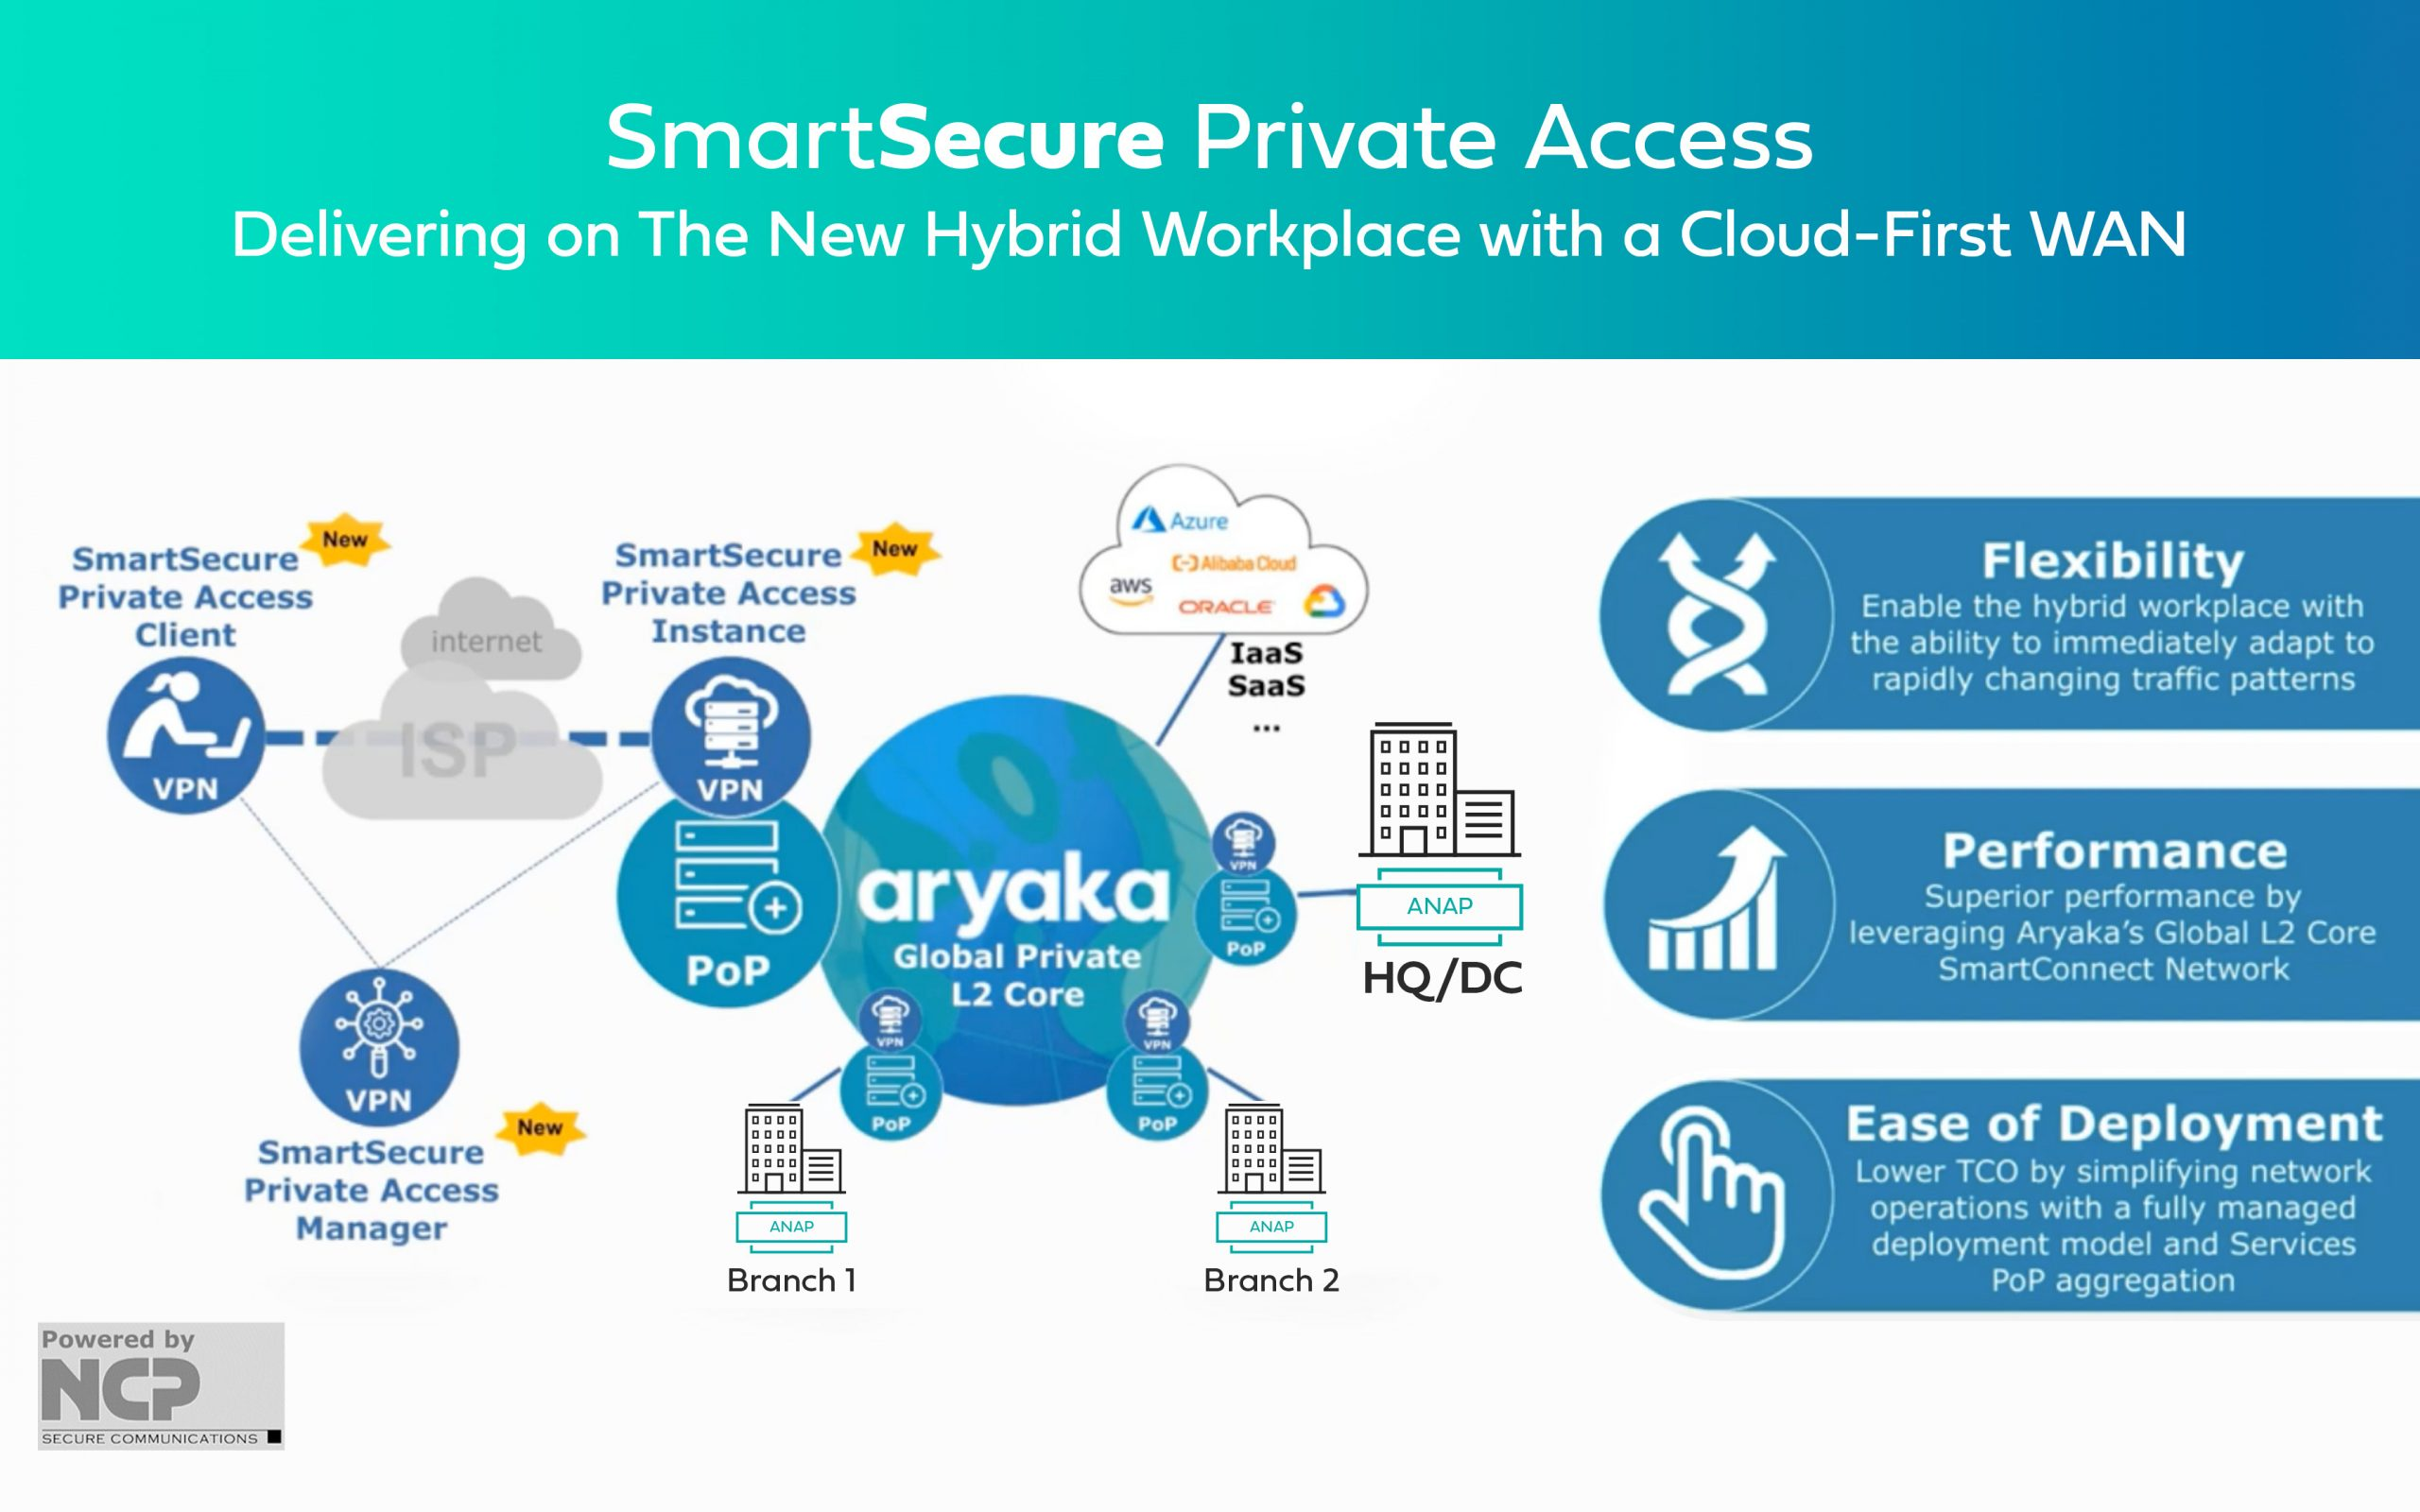 SmartSecure Private Access